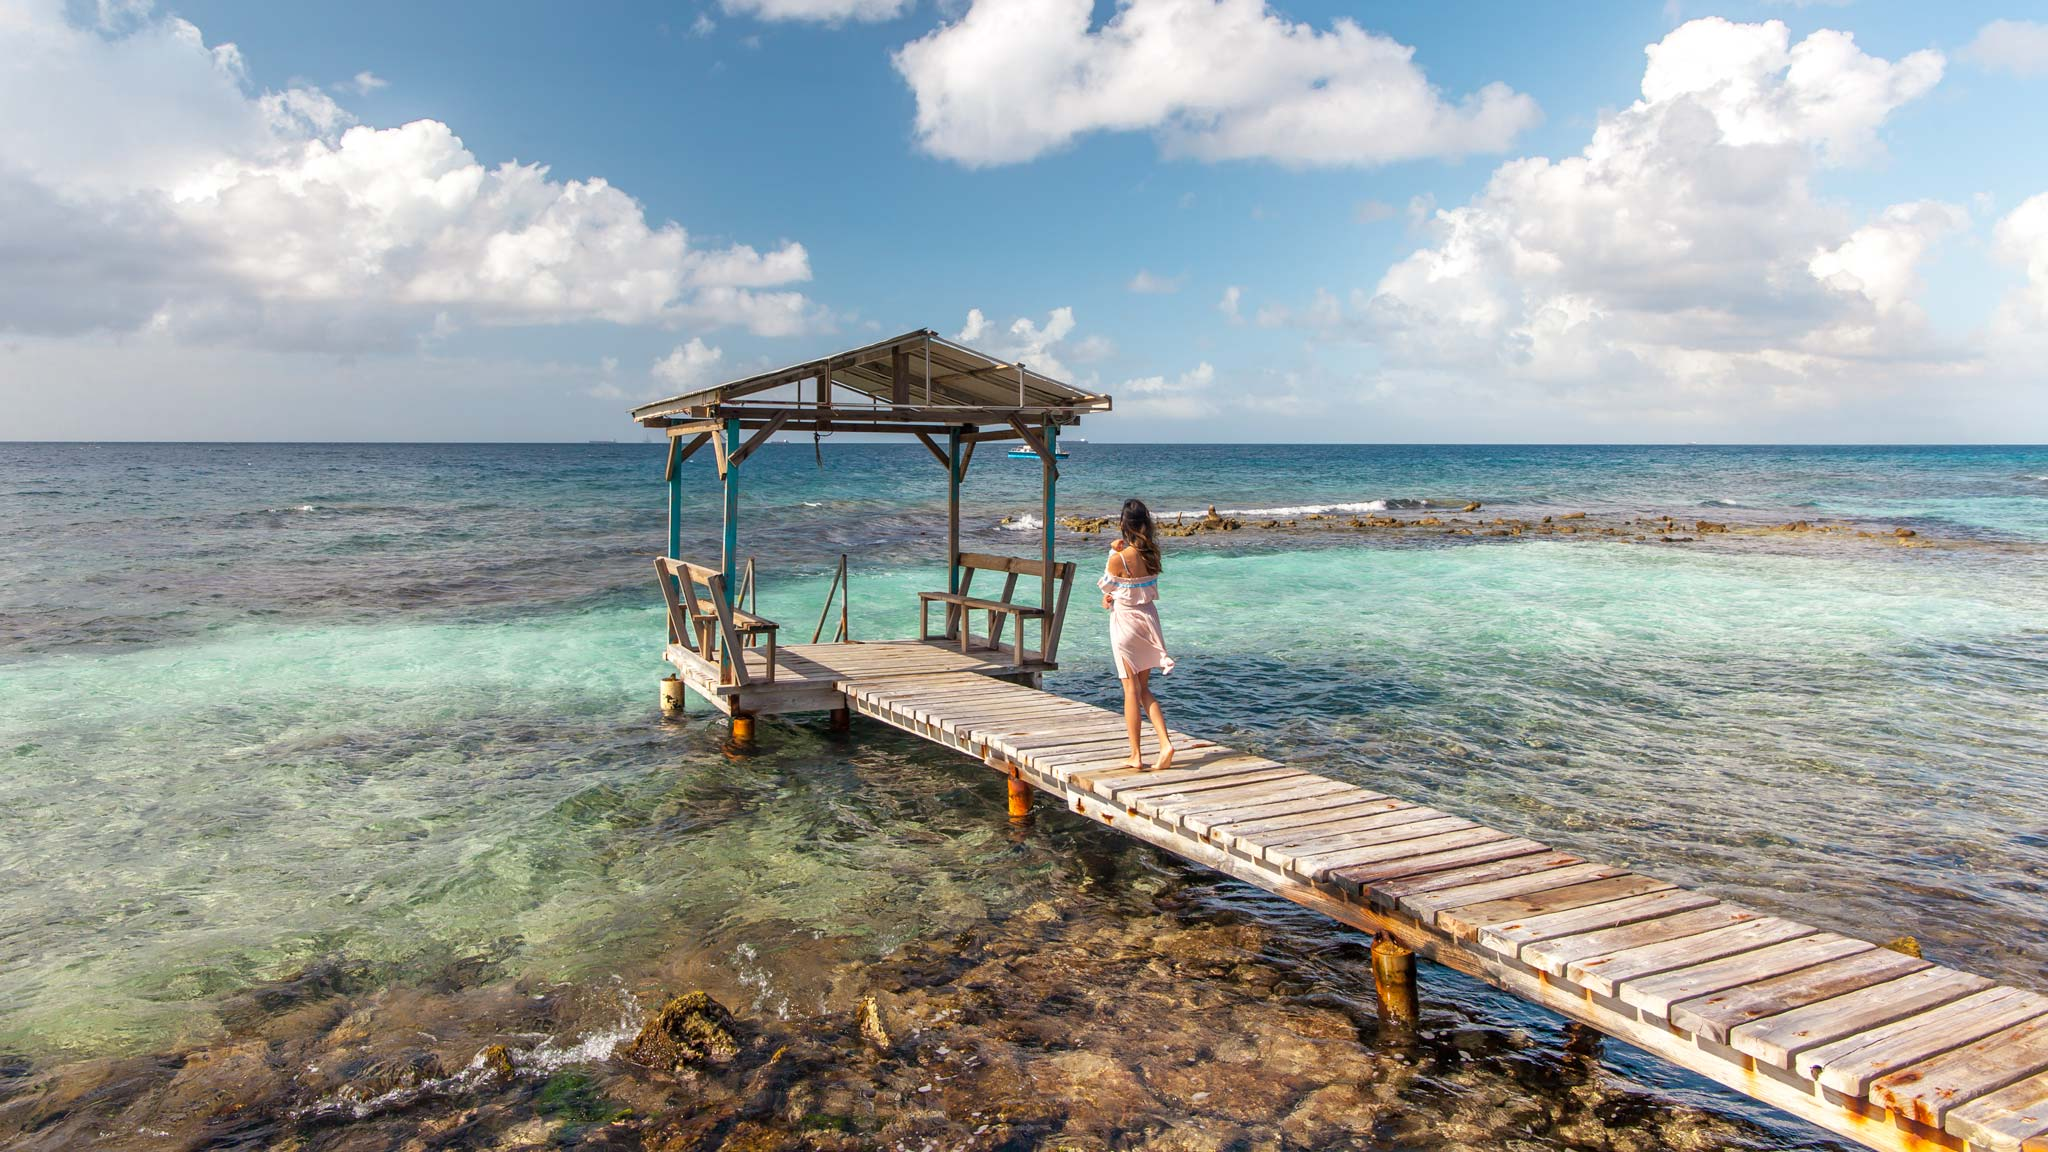 Aruba Travel Guide: The best local experiences | One week Aruba